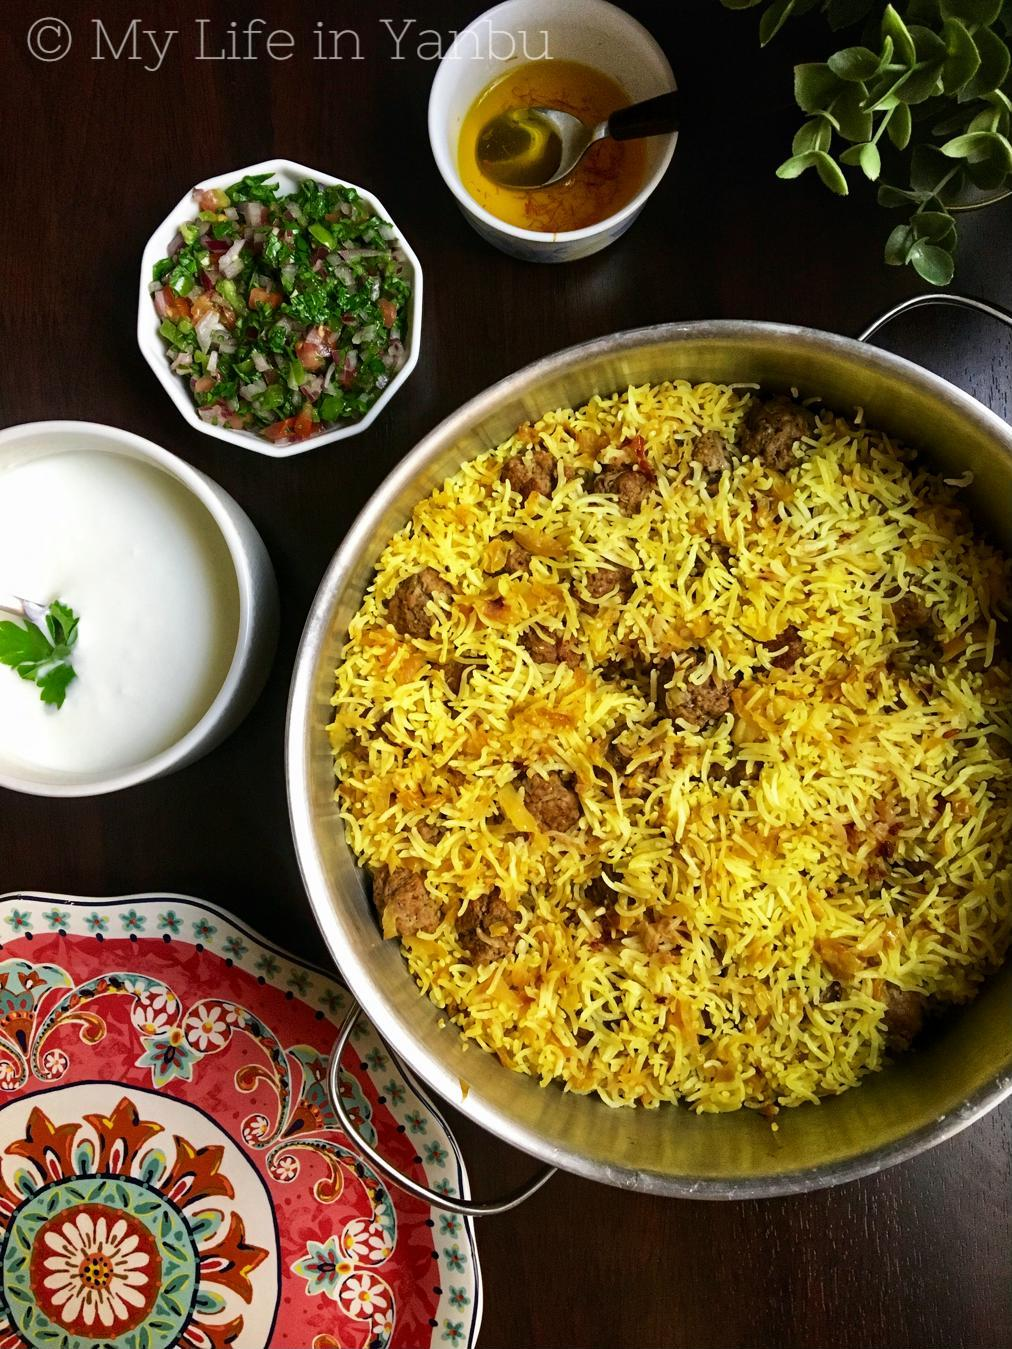 Kalam Polow Ba Zafaran and Kofte | Cabbage Rice With Saffron and Meatballs